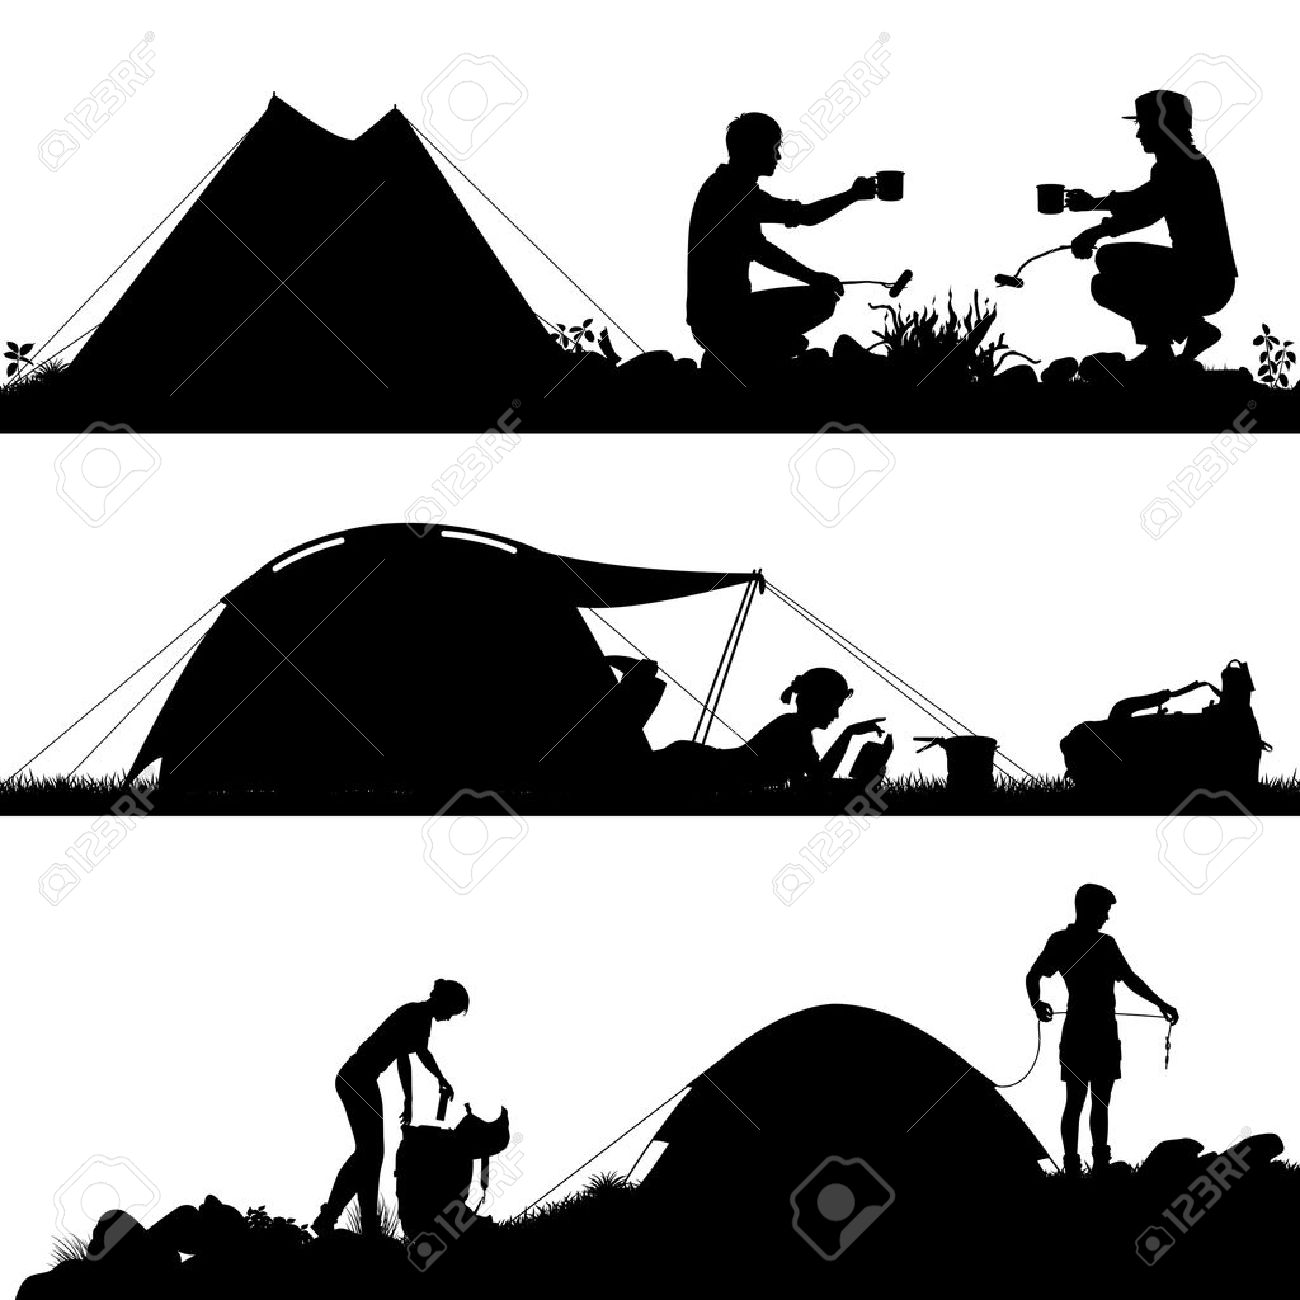 14880 Camping Tent Stock Vector Illustration And Royalty Free